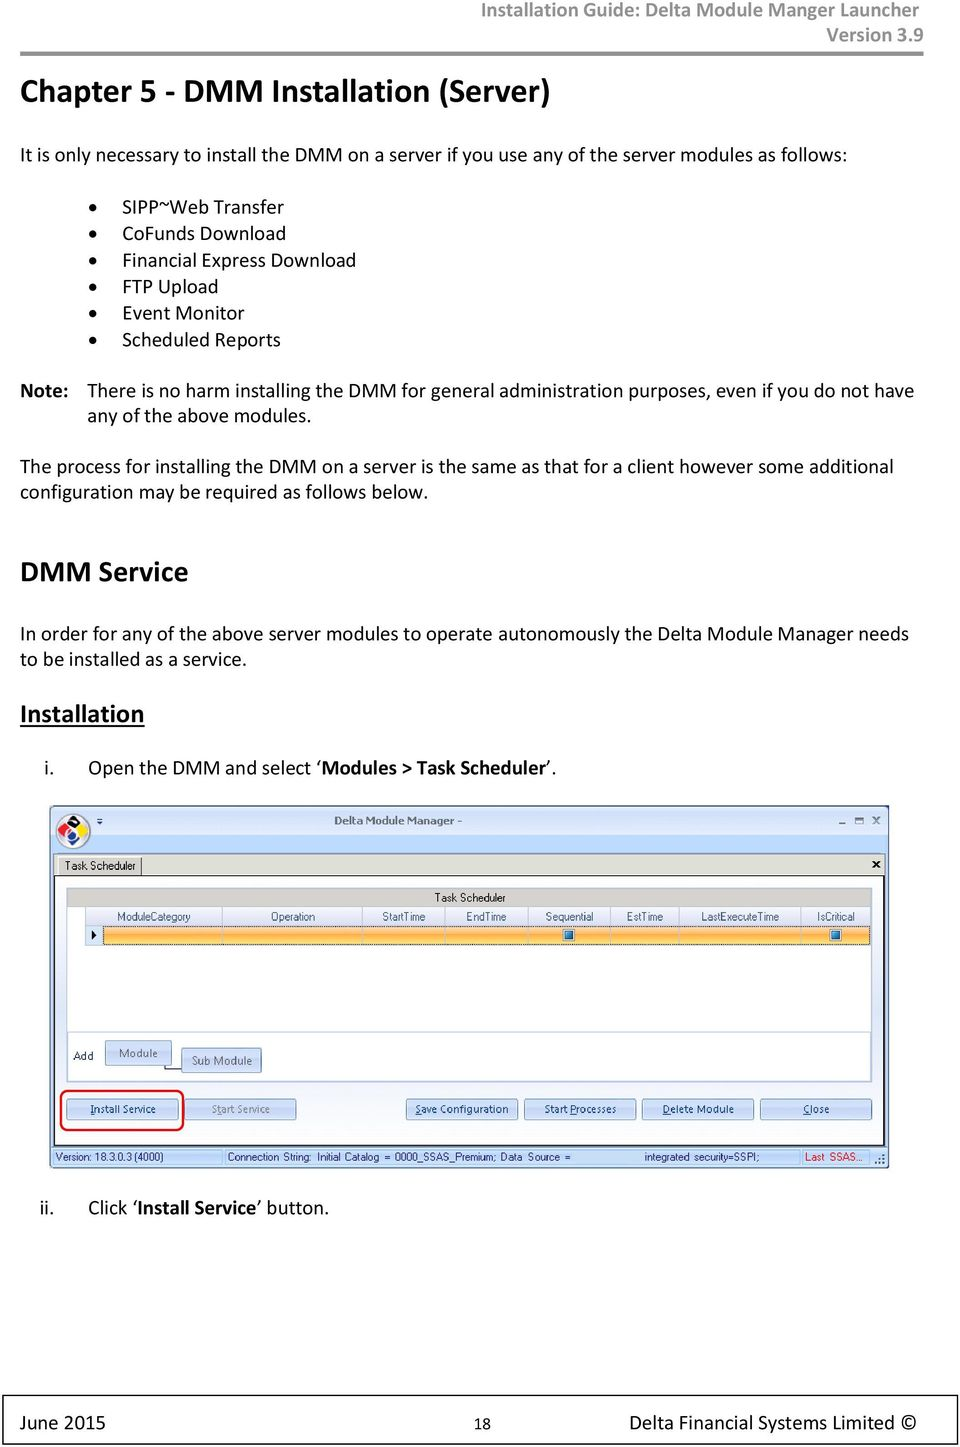 any of the above modules. The process for installing the DMM on a server is the same as that for a client however some additional configuration may be required as follows below.